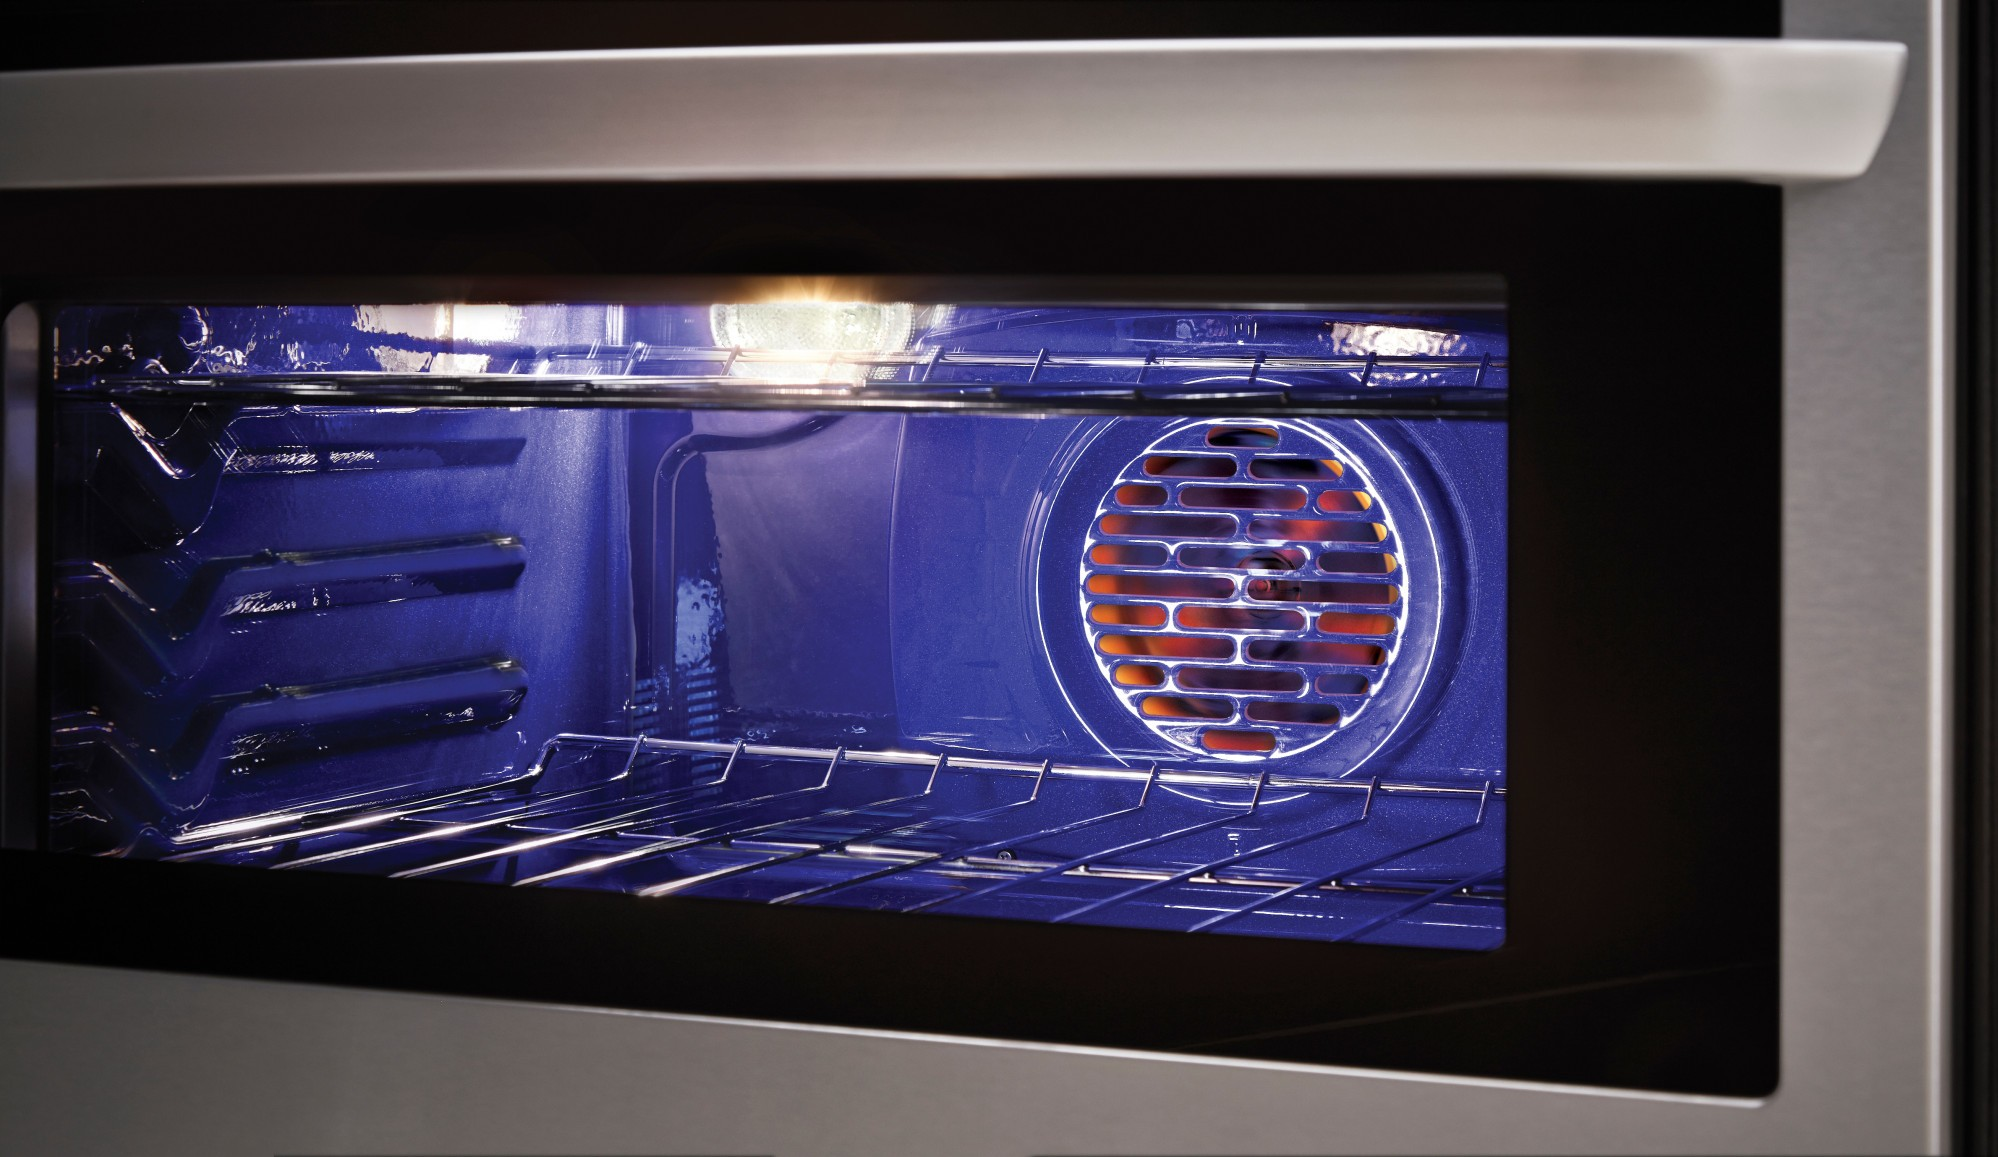 how to use self clean on lg oven